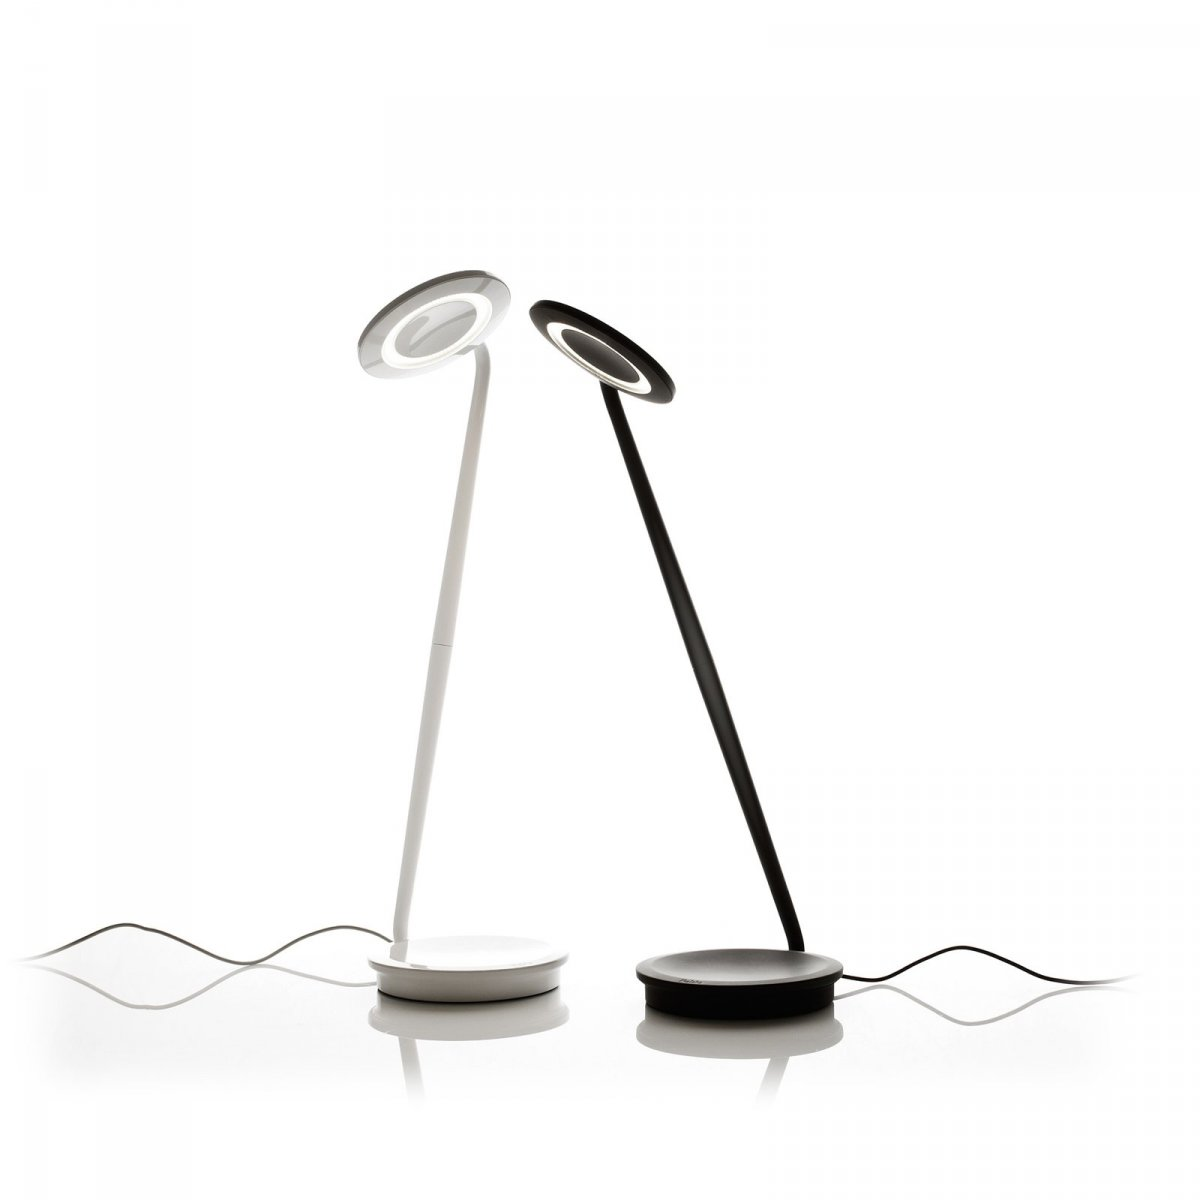 Pixo work lamps, white and graphite.